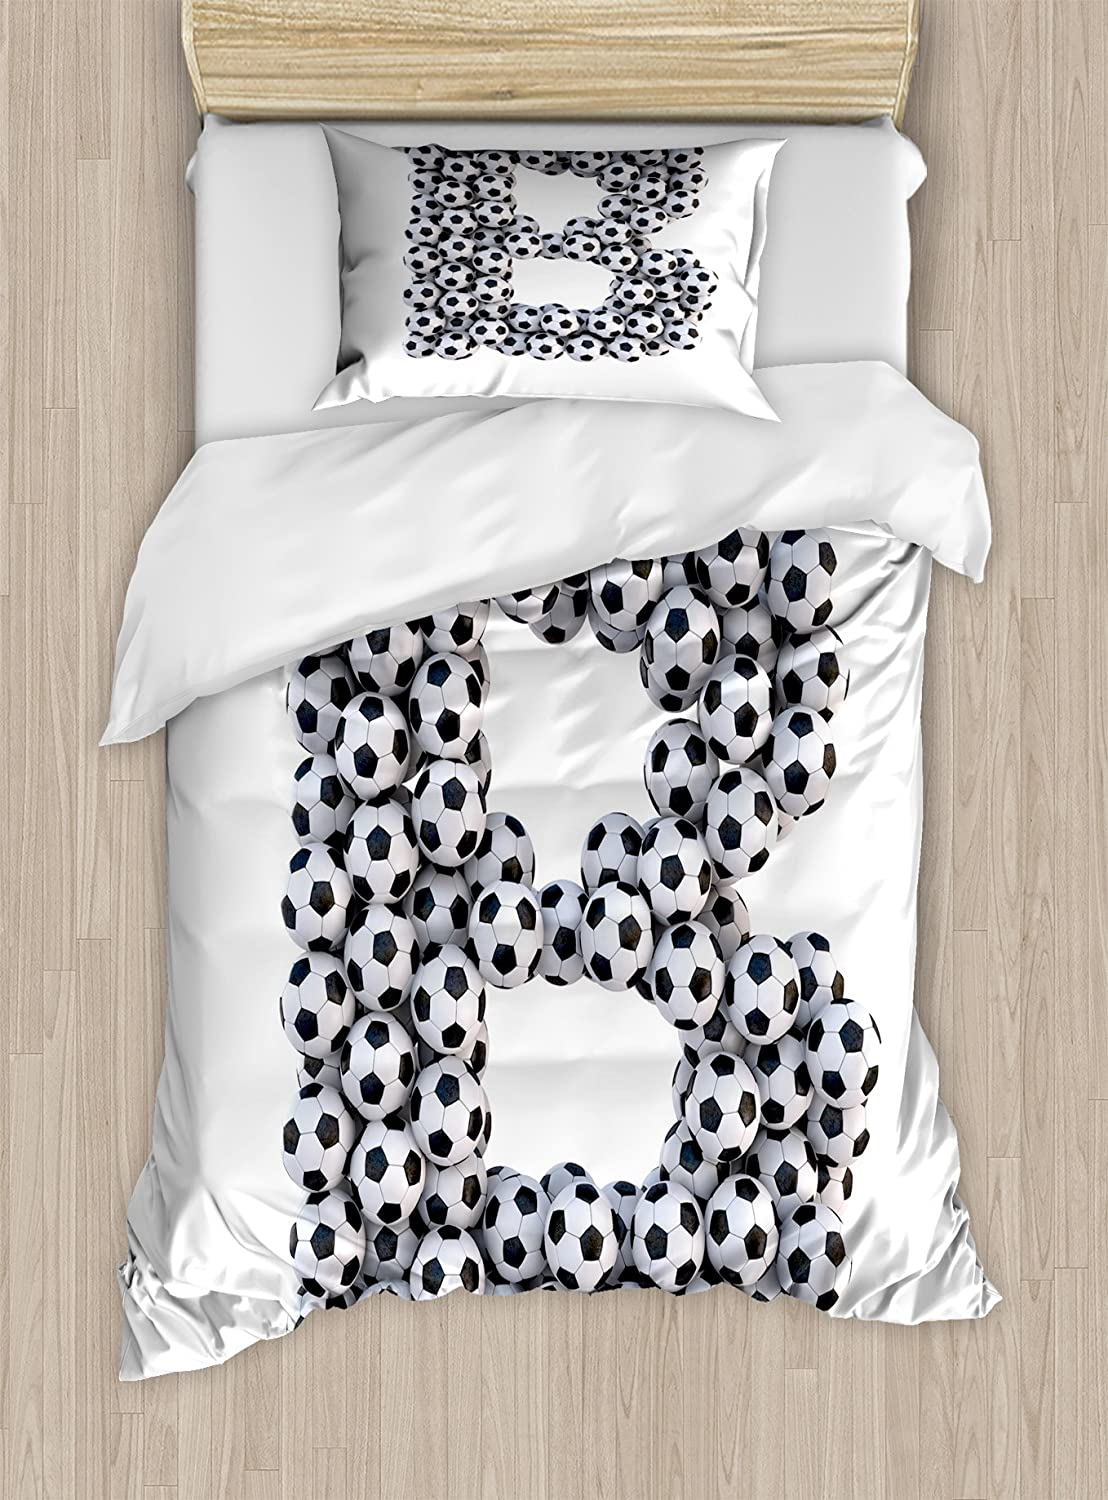 Illustration of Soccer Ball Championship Tournament Victory Theme Stadium Team Play Decorative 2 Piece Bedding Set with 1 Pillow Sham Ambesonne Sports Duvet Cover Set Twin Size Black White